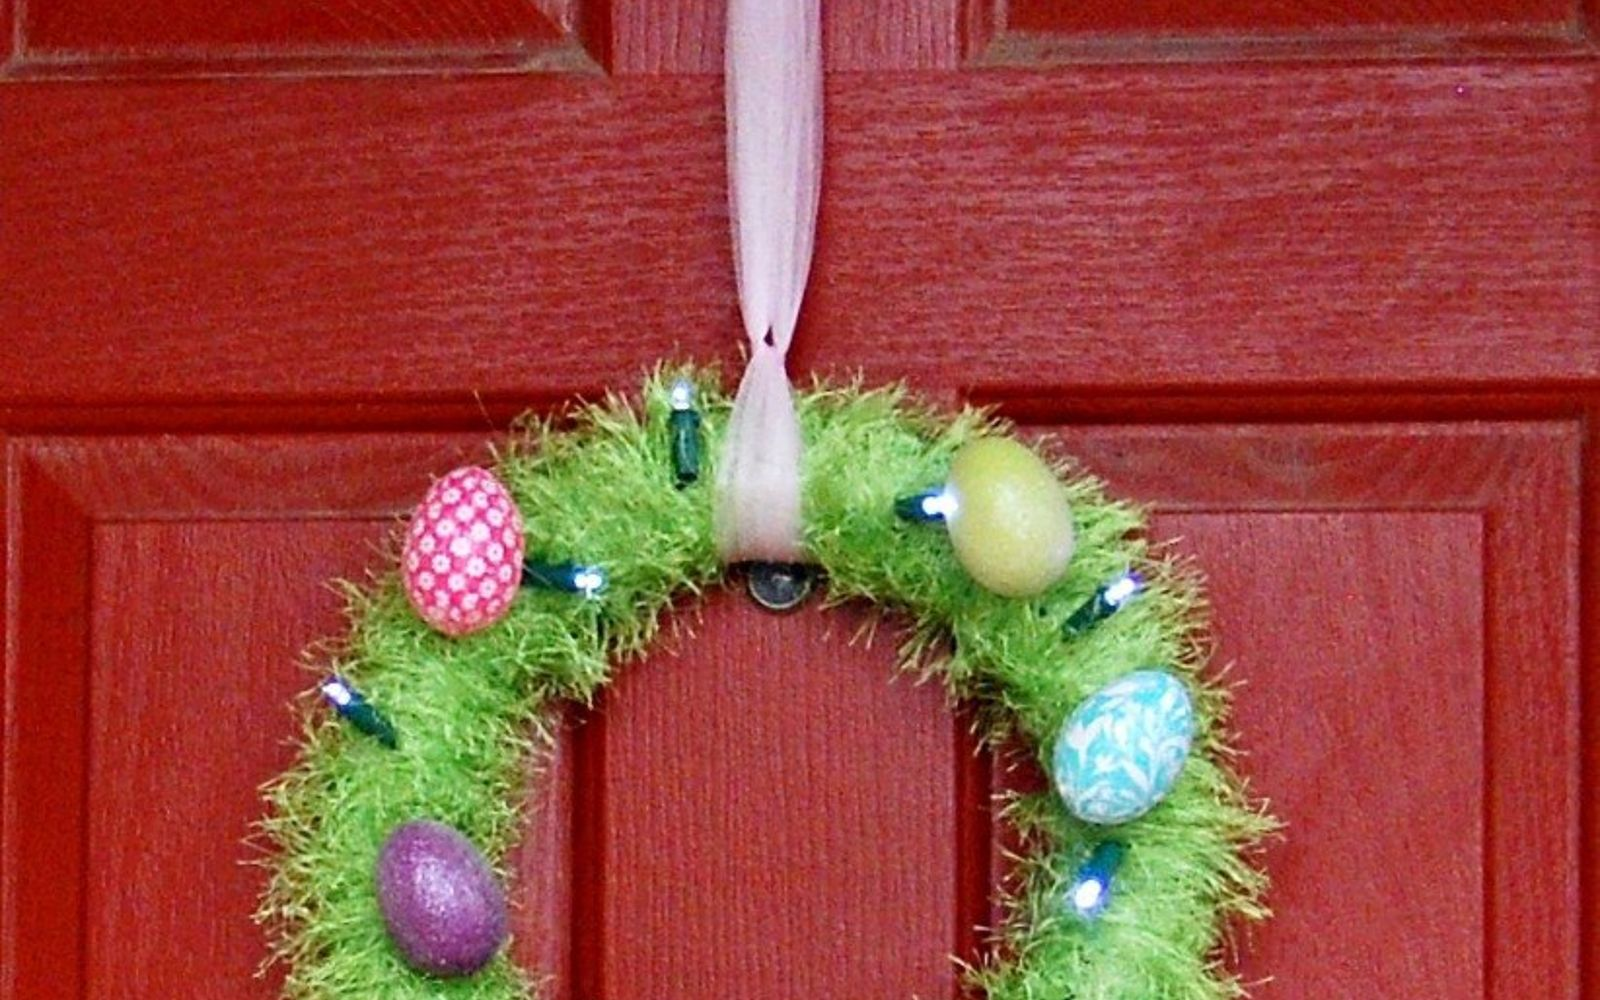 s 31 gorgeous spring wreaths that will make your neighbors smile, crafts, seasonal holiday decor, wreaths, Wrap lights around a grassy wreath